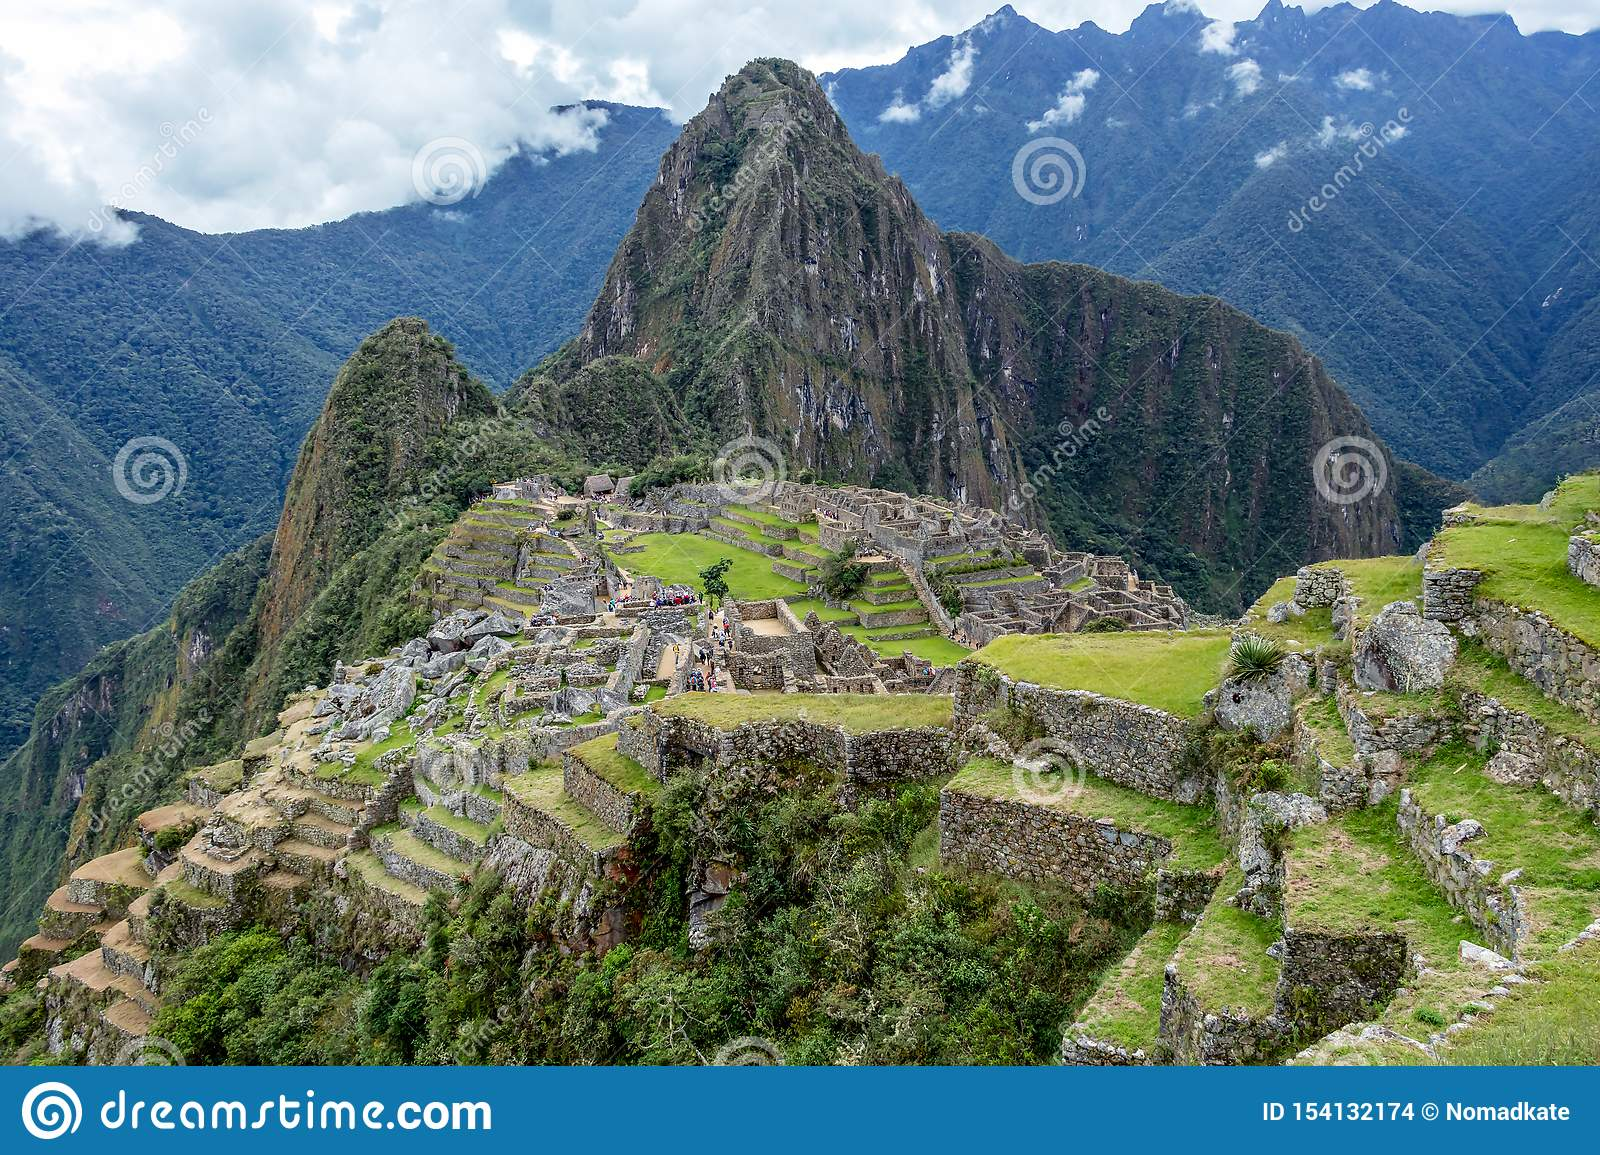 Abandoned ruins of Machu Picchu Incan citadel, the maze of terraces and walls rising out of the thick undergrowth, Peru